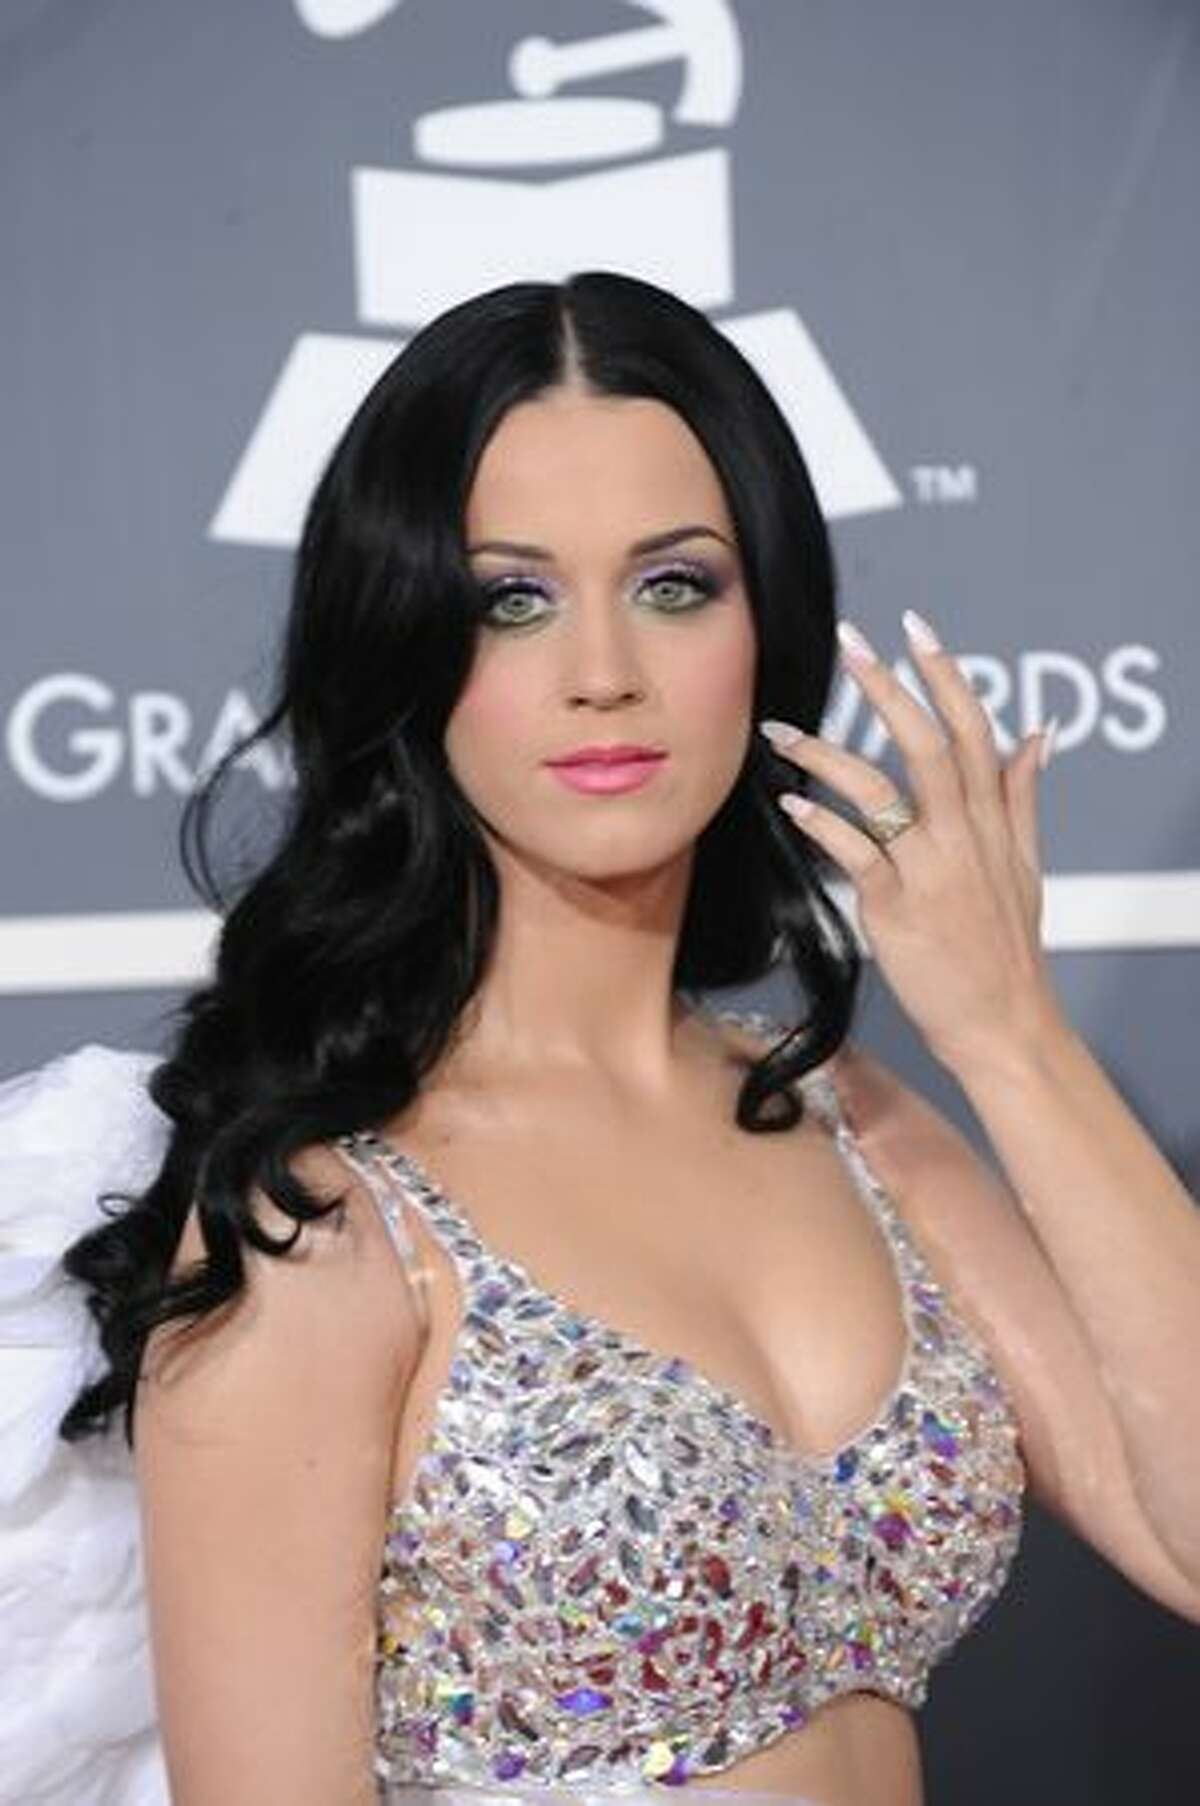 Singer Katy Perry arrives for the 53rd annual Grammy Awards at the Staples Center in Los Angeles.